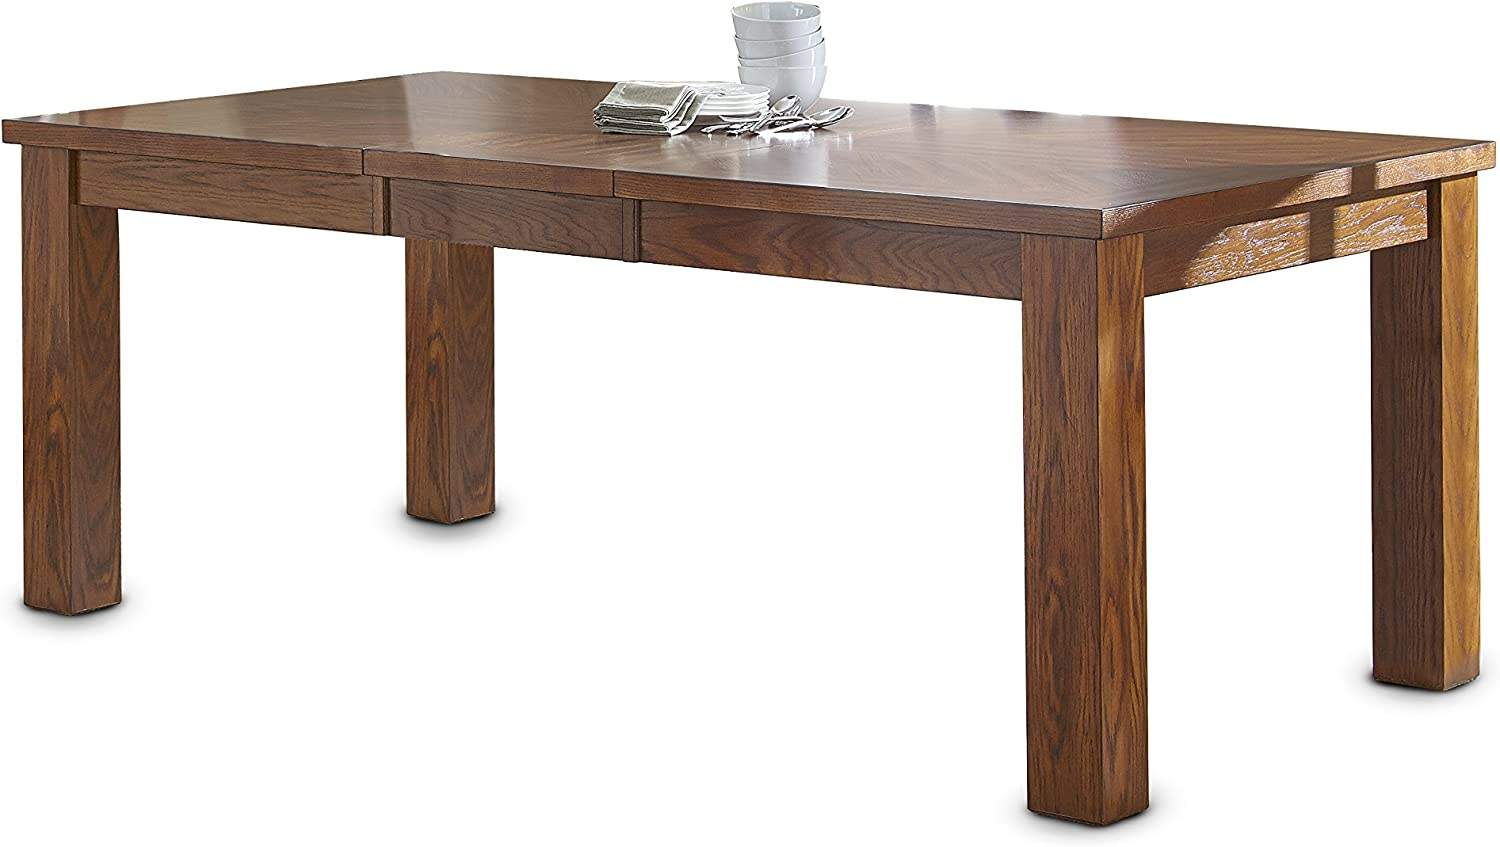 Steve Silver Company Lakewood Table with 18 Leaf, 42 x 60 -78 x 30 , Medium Oak